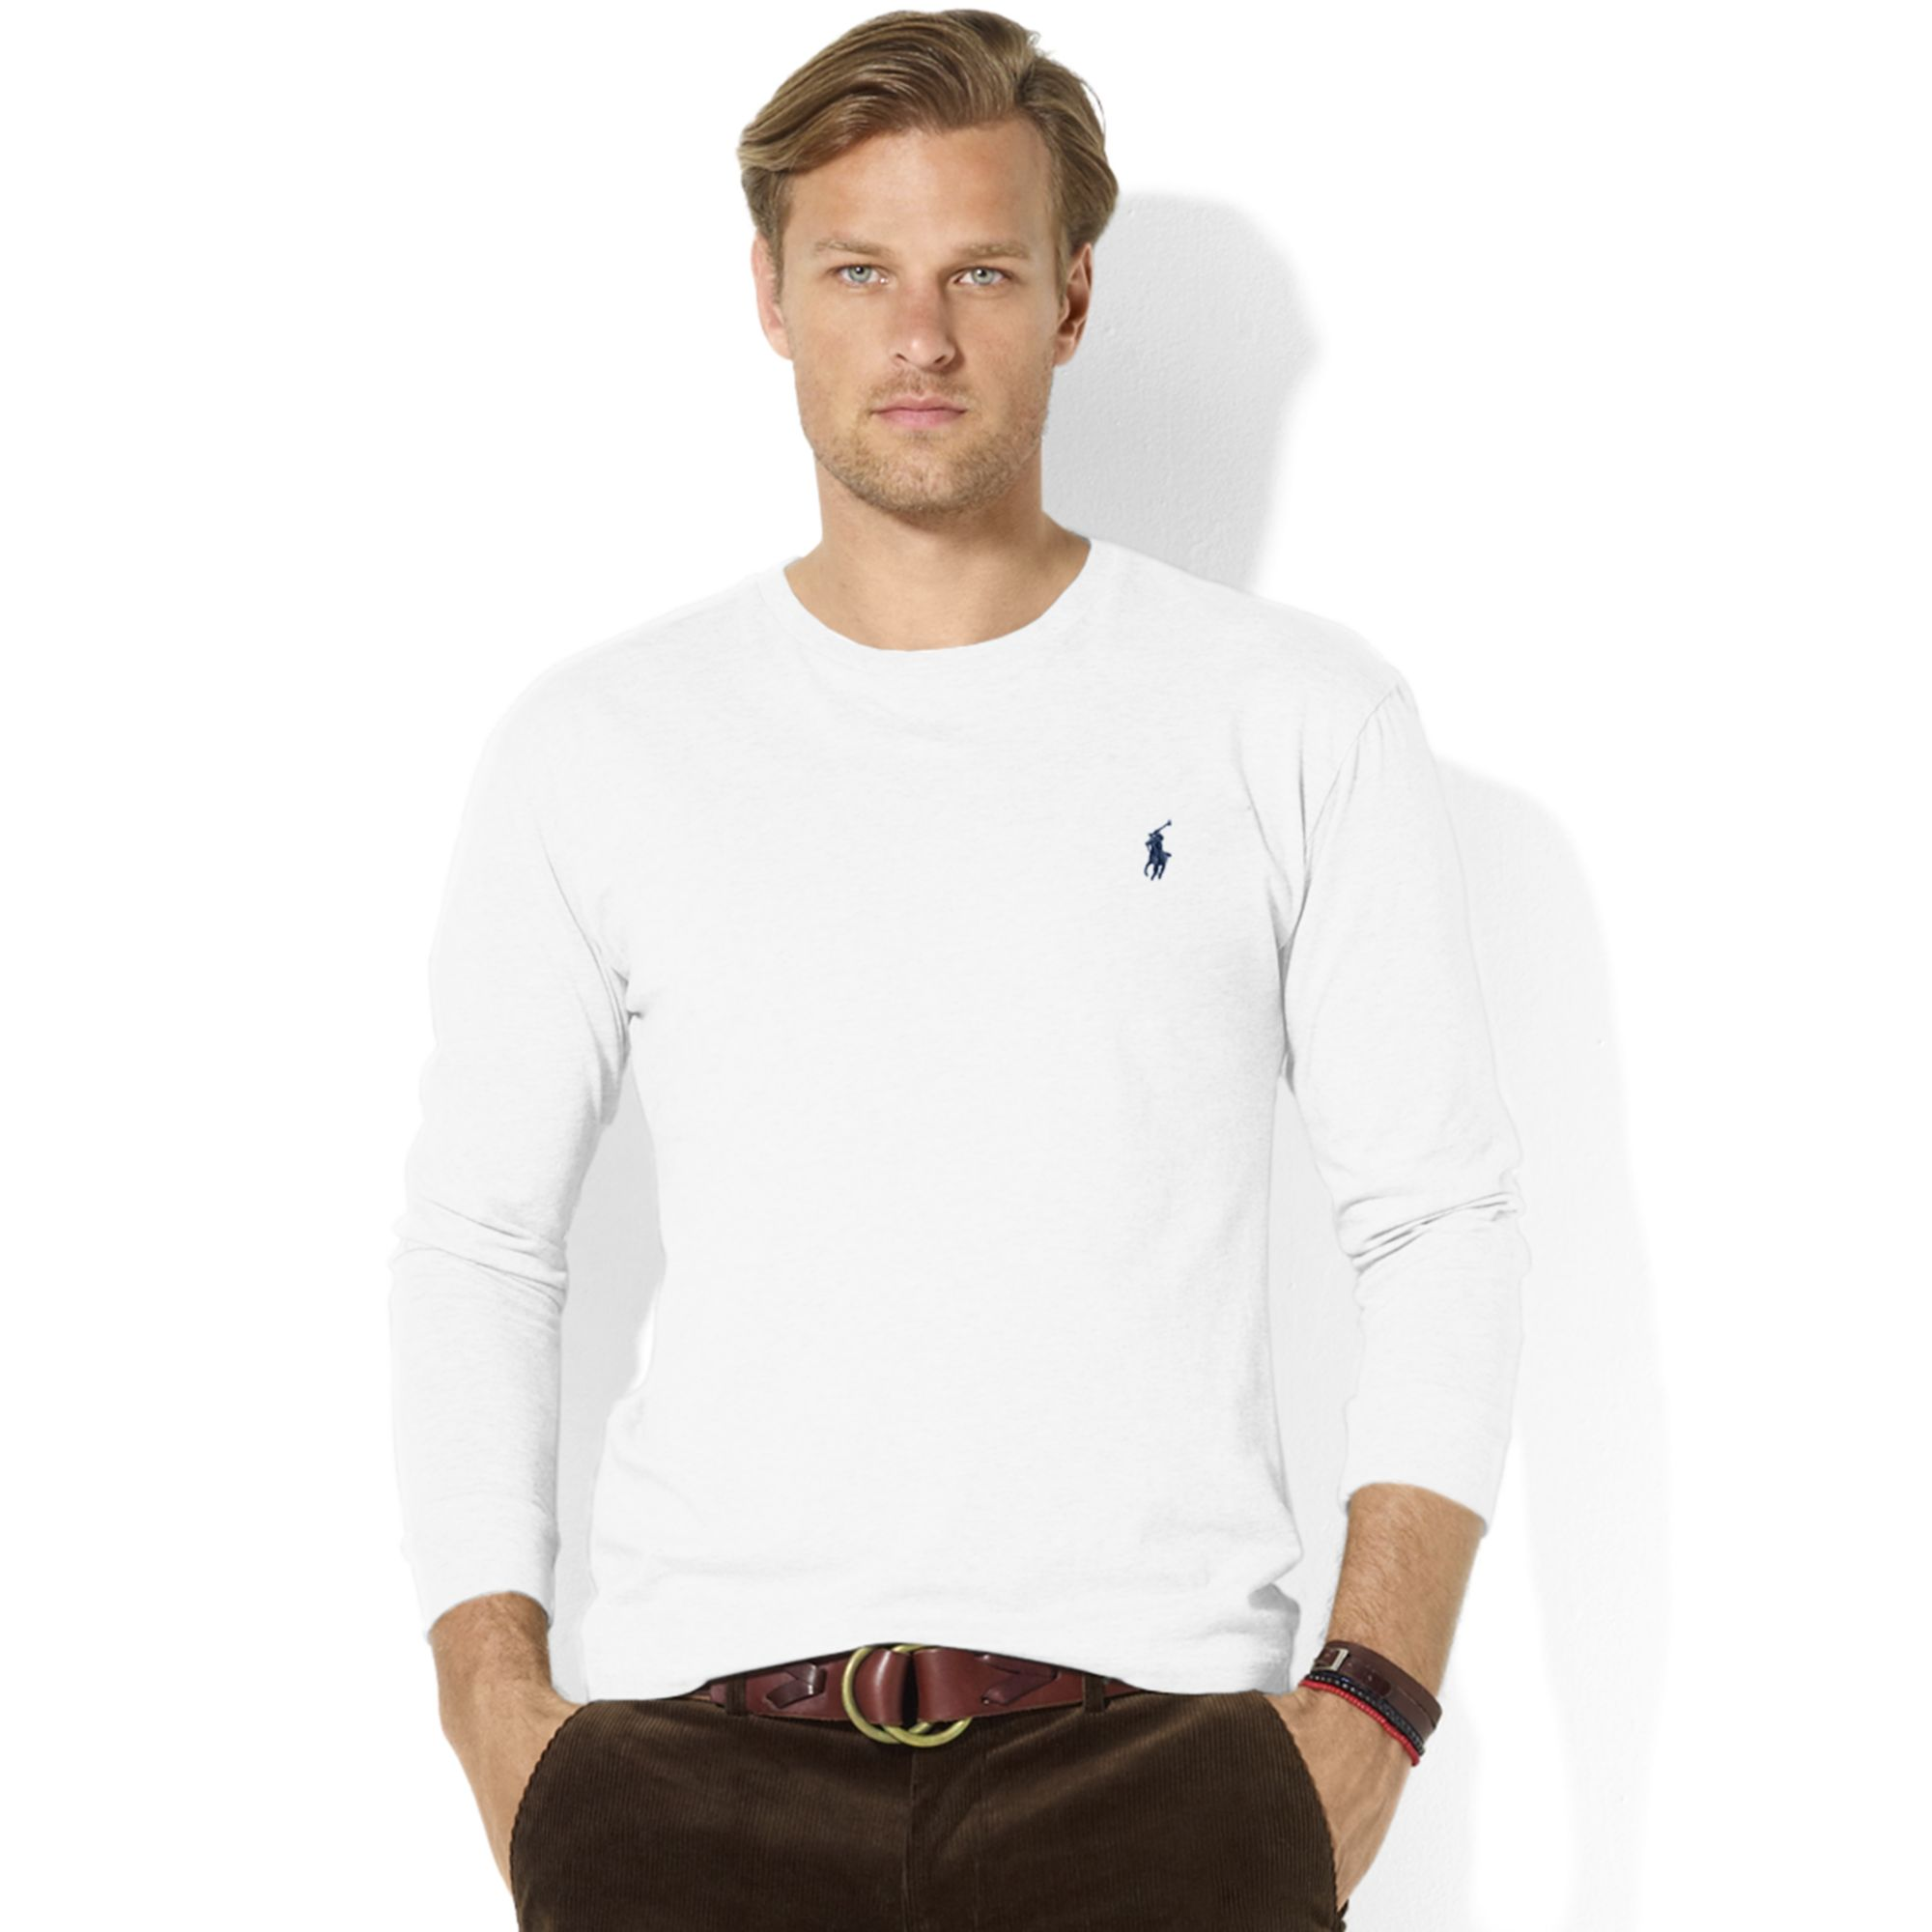 lyst ralph lauren classic fit longsleeve cotton jersey pocket crew neck t shirt in white for men. Black Bedroom Furniture Sets. Home Design Ideas